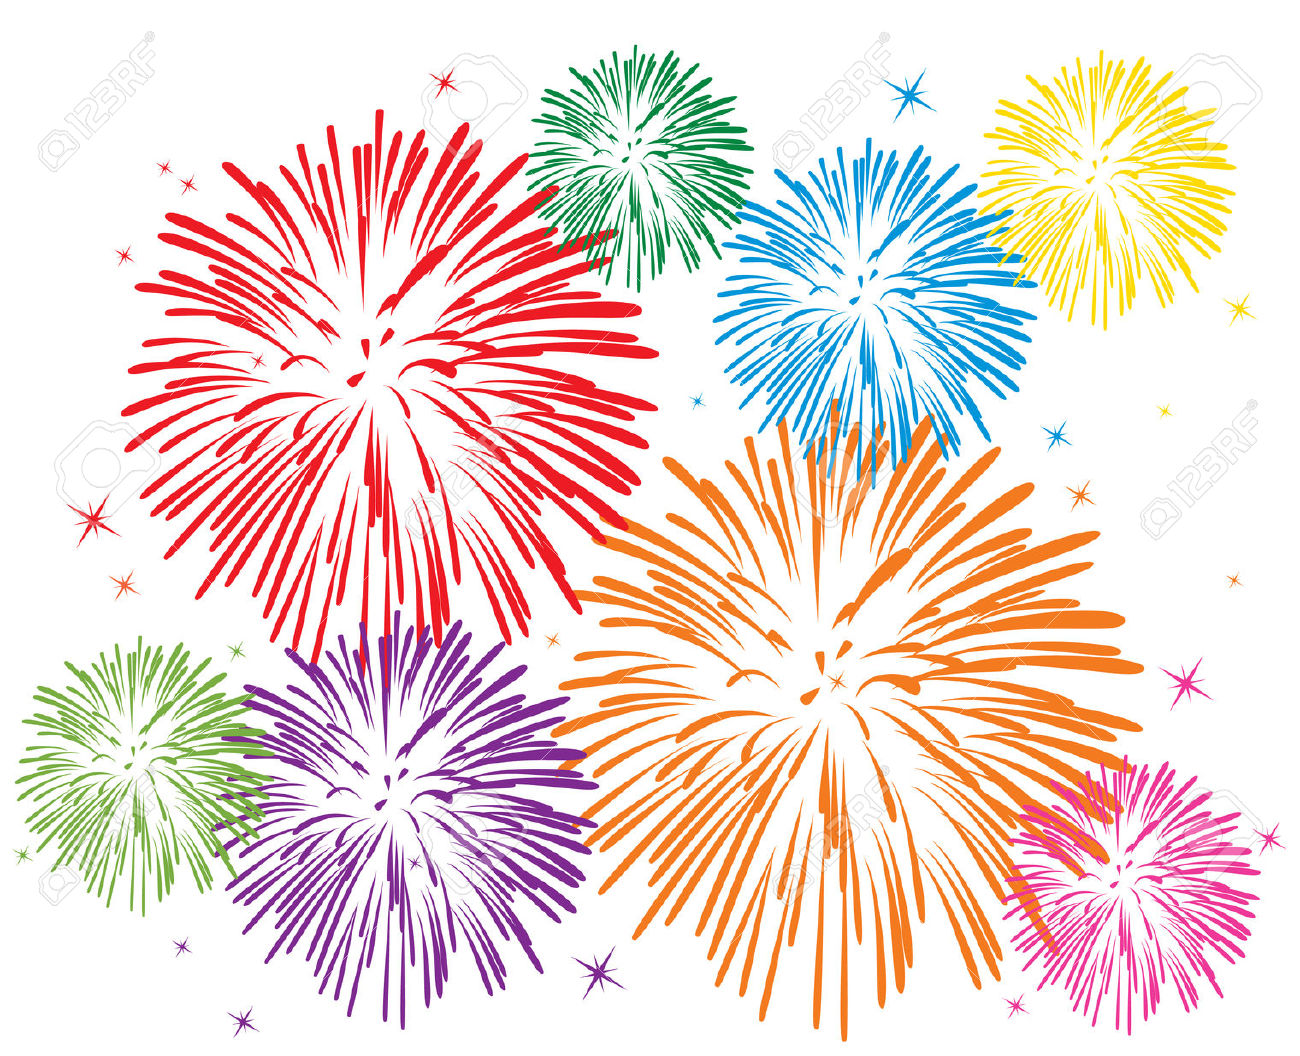 Firework clipart no background 3 » Clipart Station.